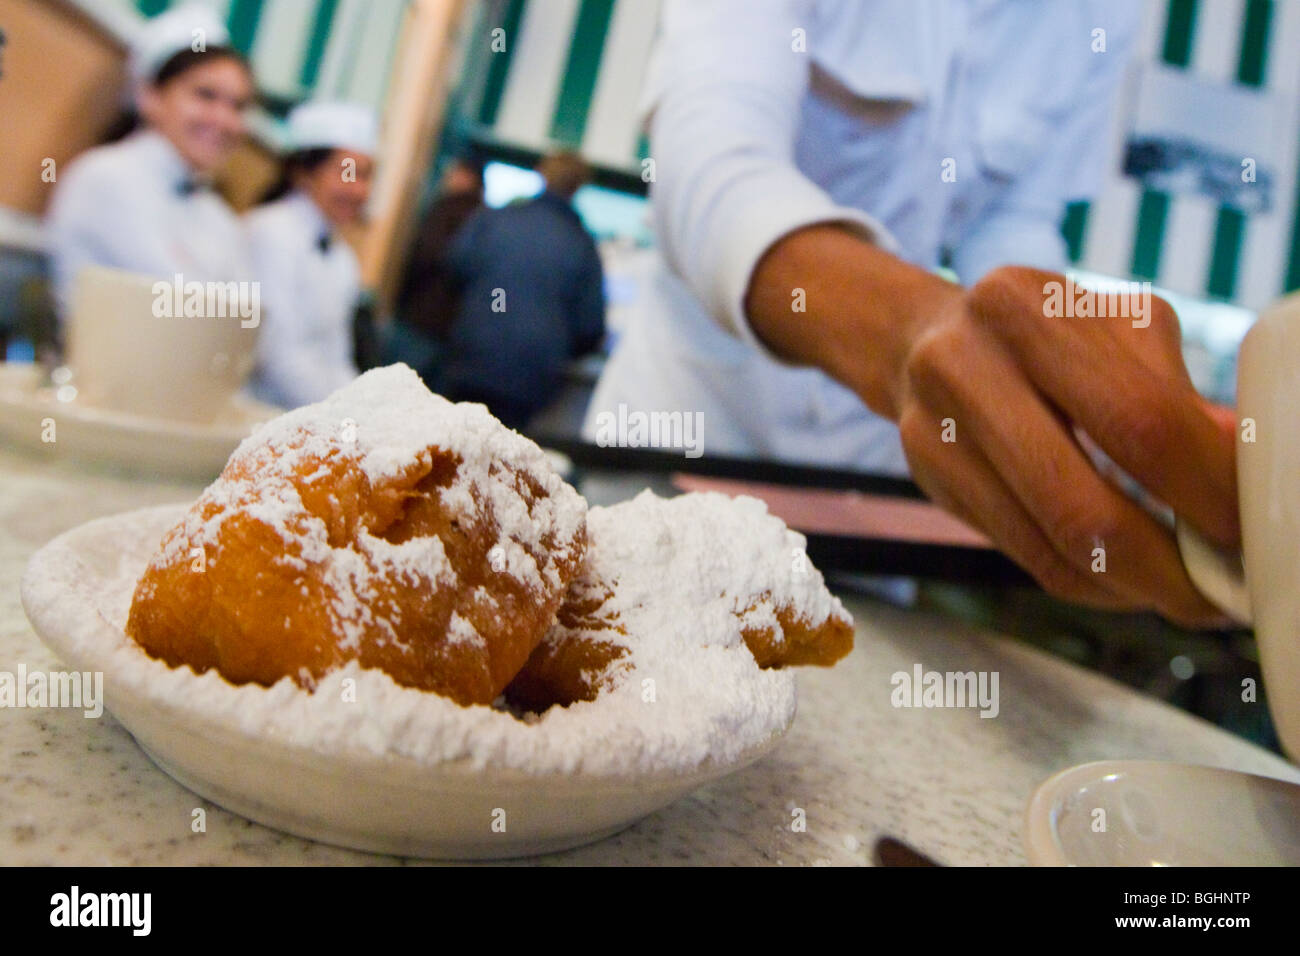 Beignets at Cafe Du Monde in the French Quarter of New Orleans, Louisiana - Stock Image